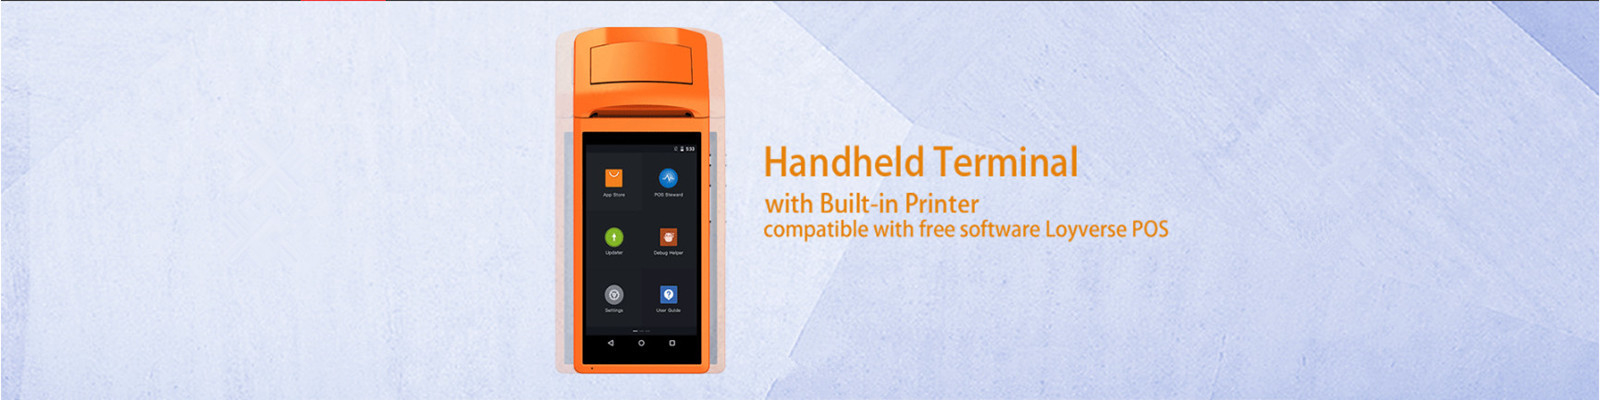 5.5 Inch Touch Screen display Handheld Terminal 3G Android Mini Pos Machine with Bluetooth Wifi Thermal Mini Pos Printer